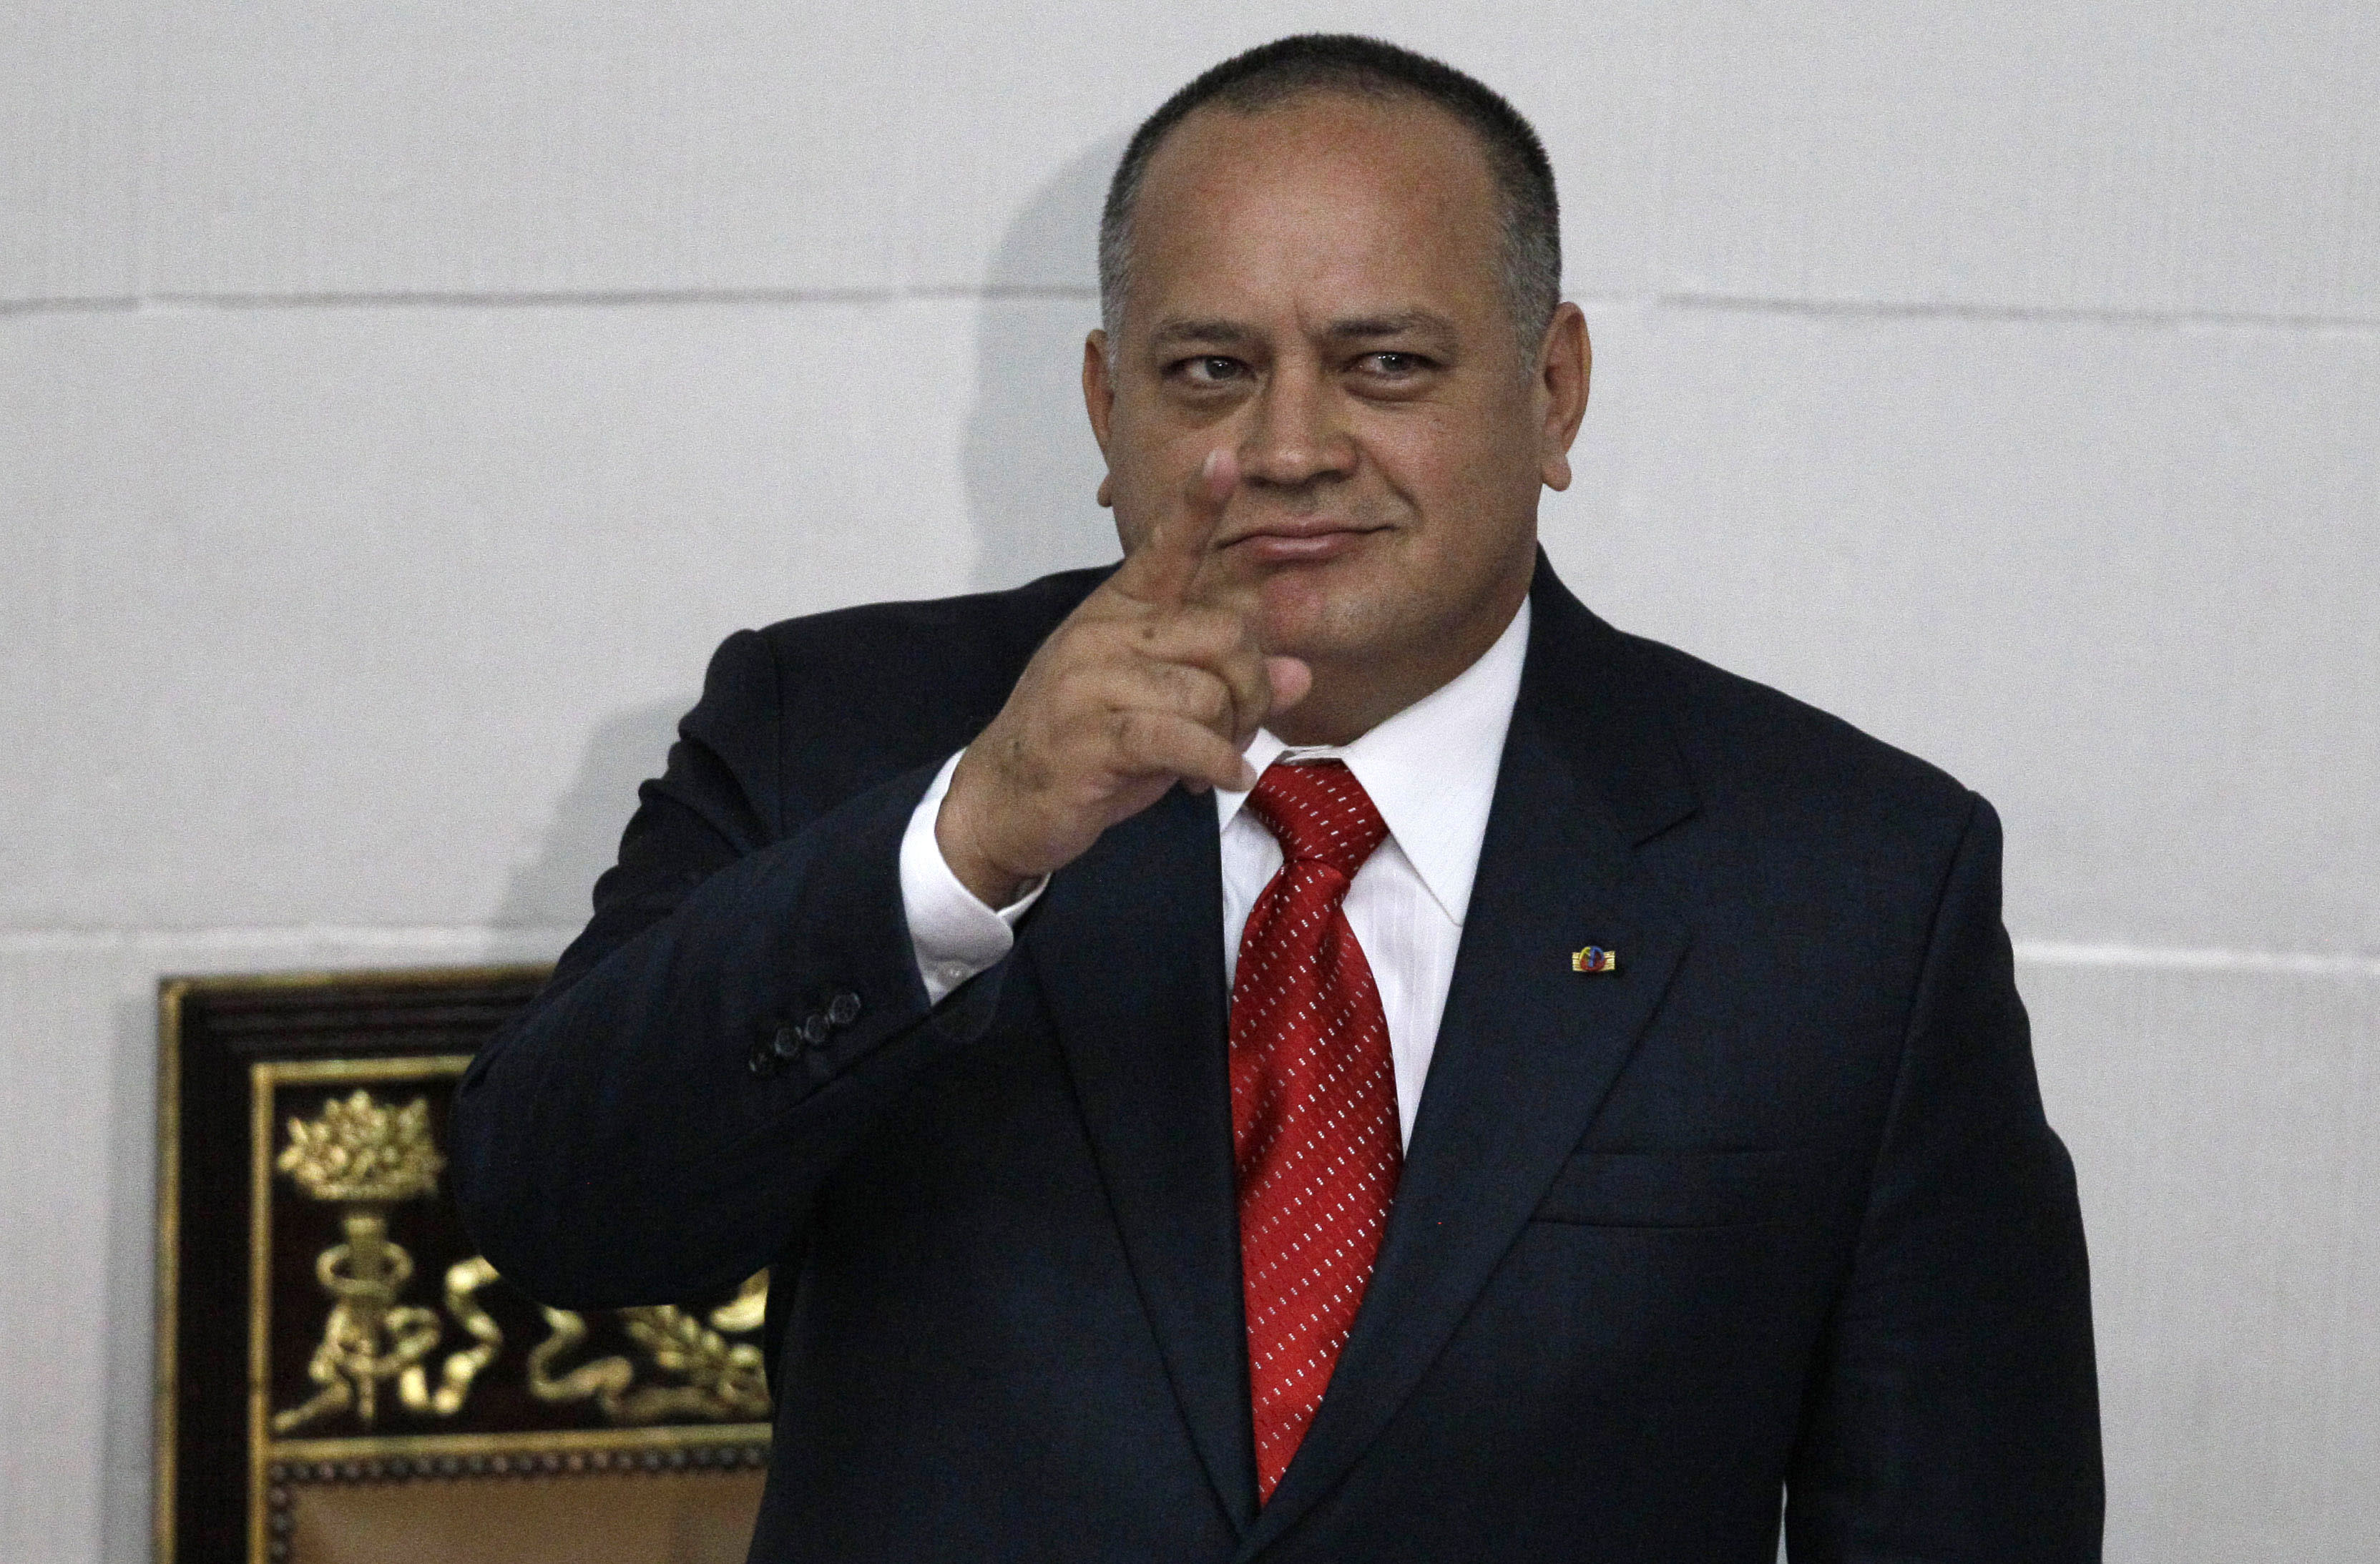 Venezuela's No. 2 distances himself from defecting bodyguard